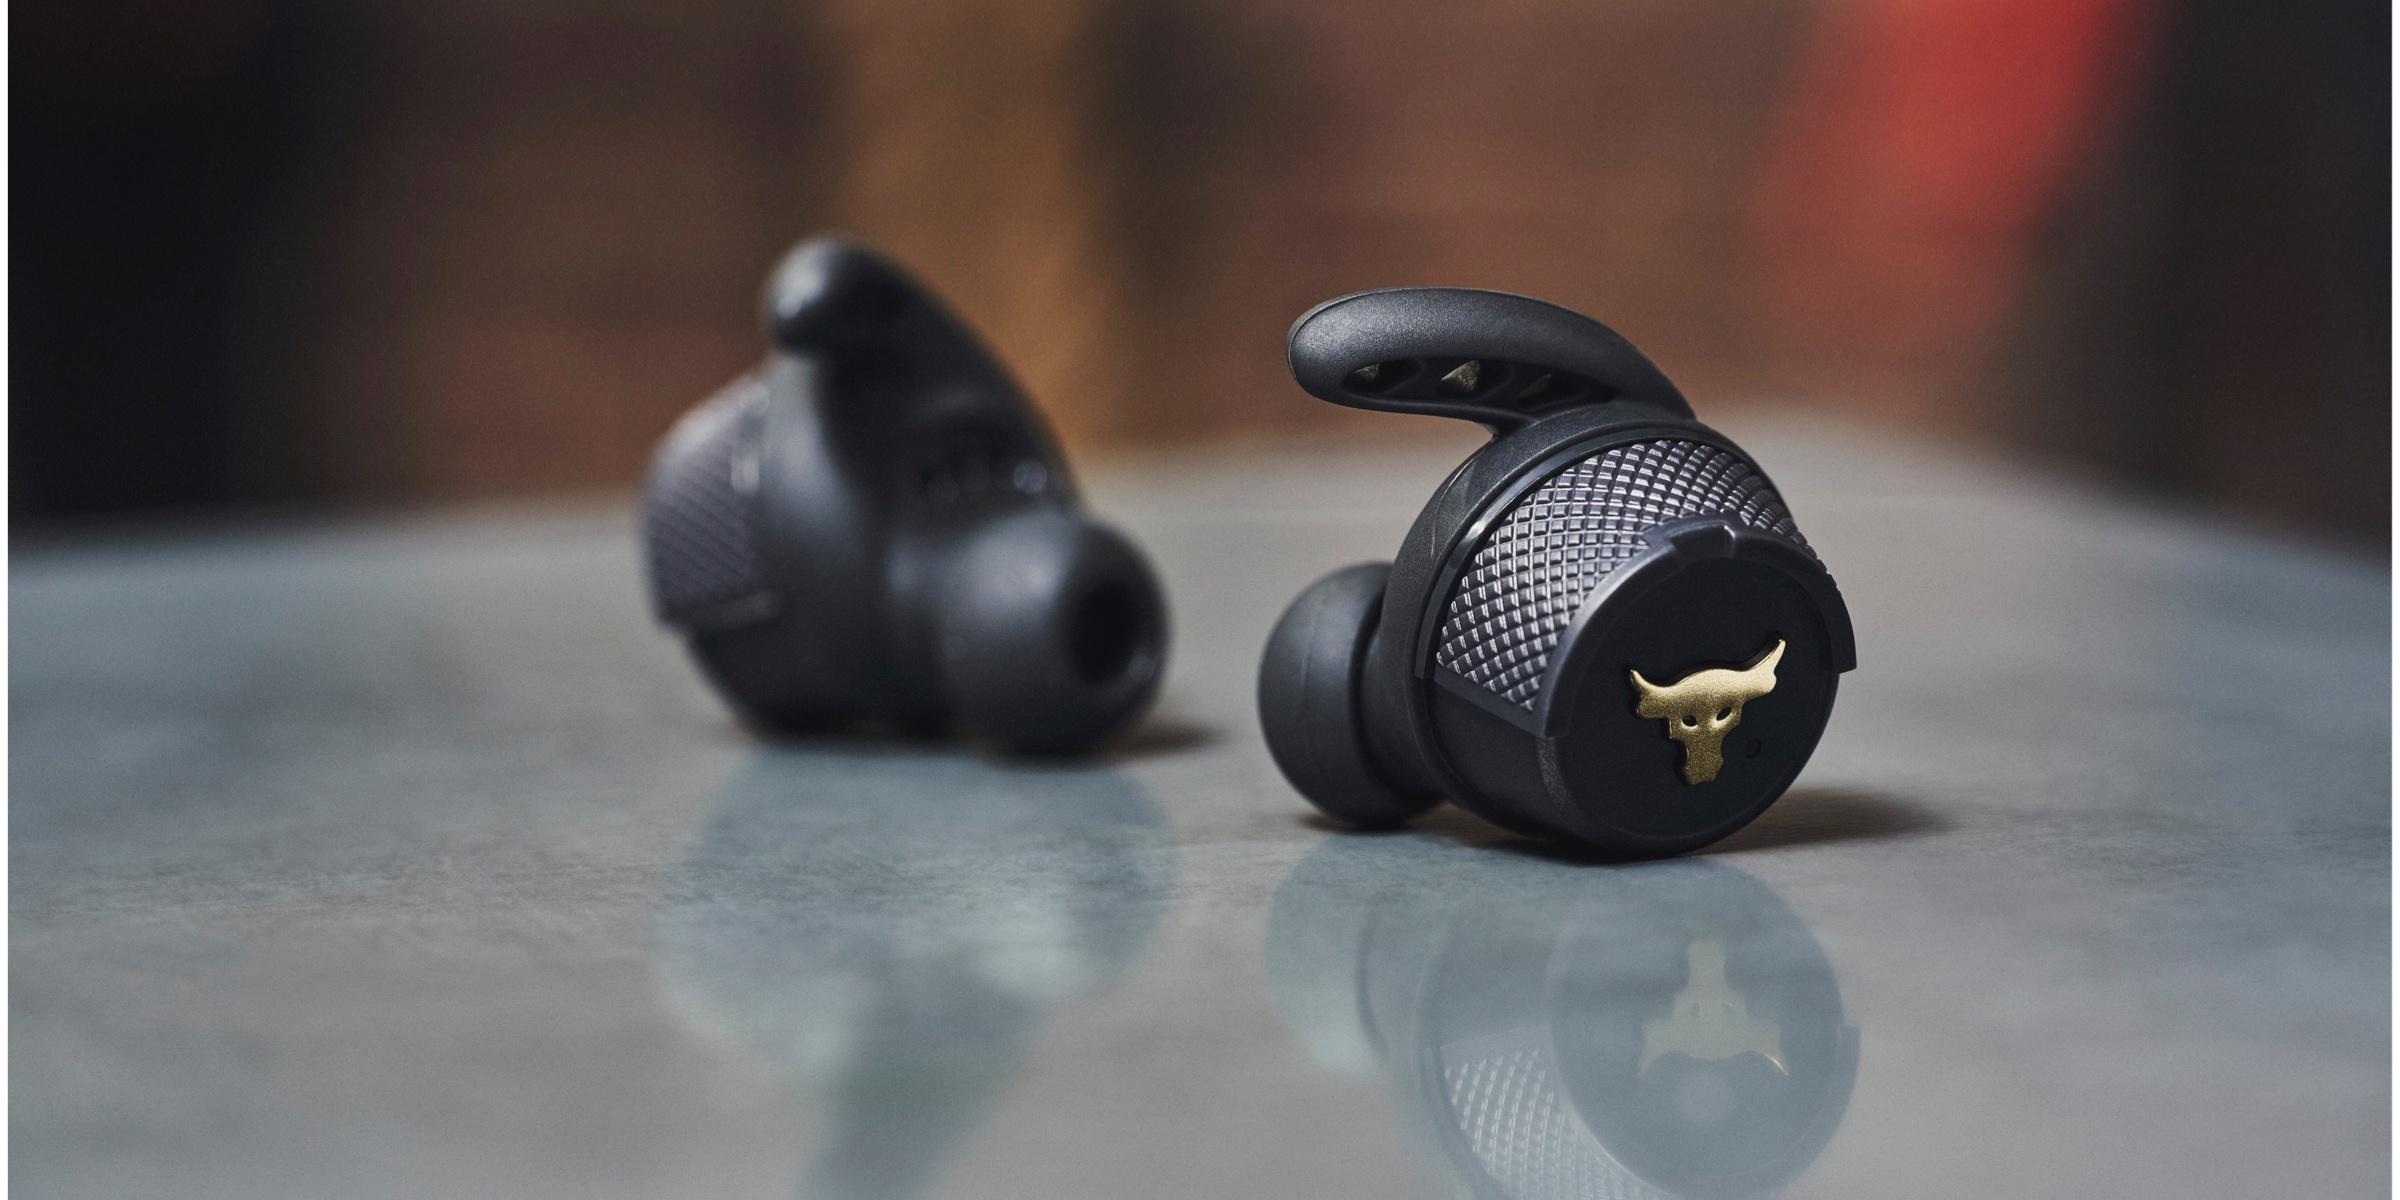 Dwayne 'The Rock' Johnson unveils new wireless earphone collaboration with Under Armour